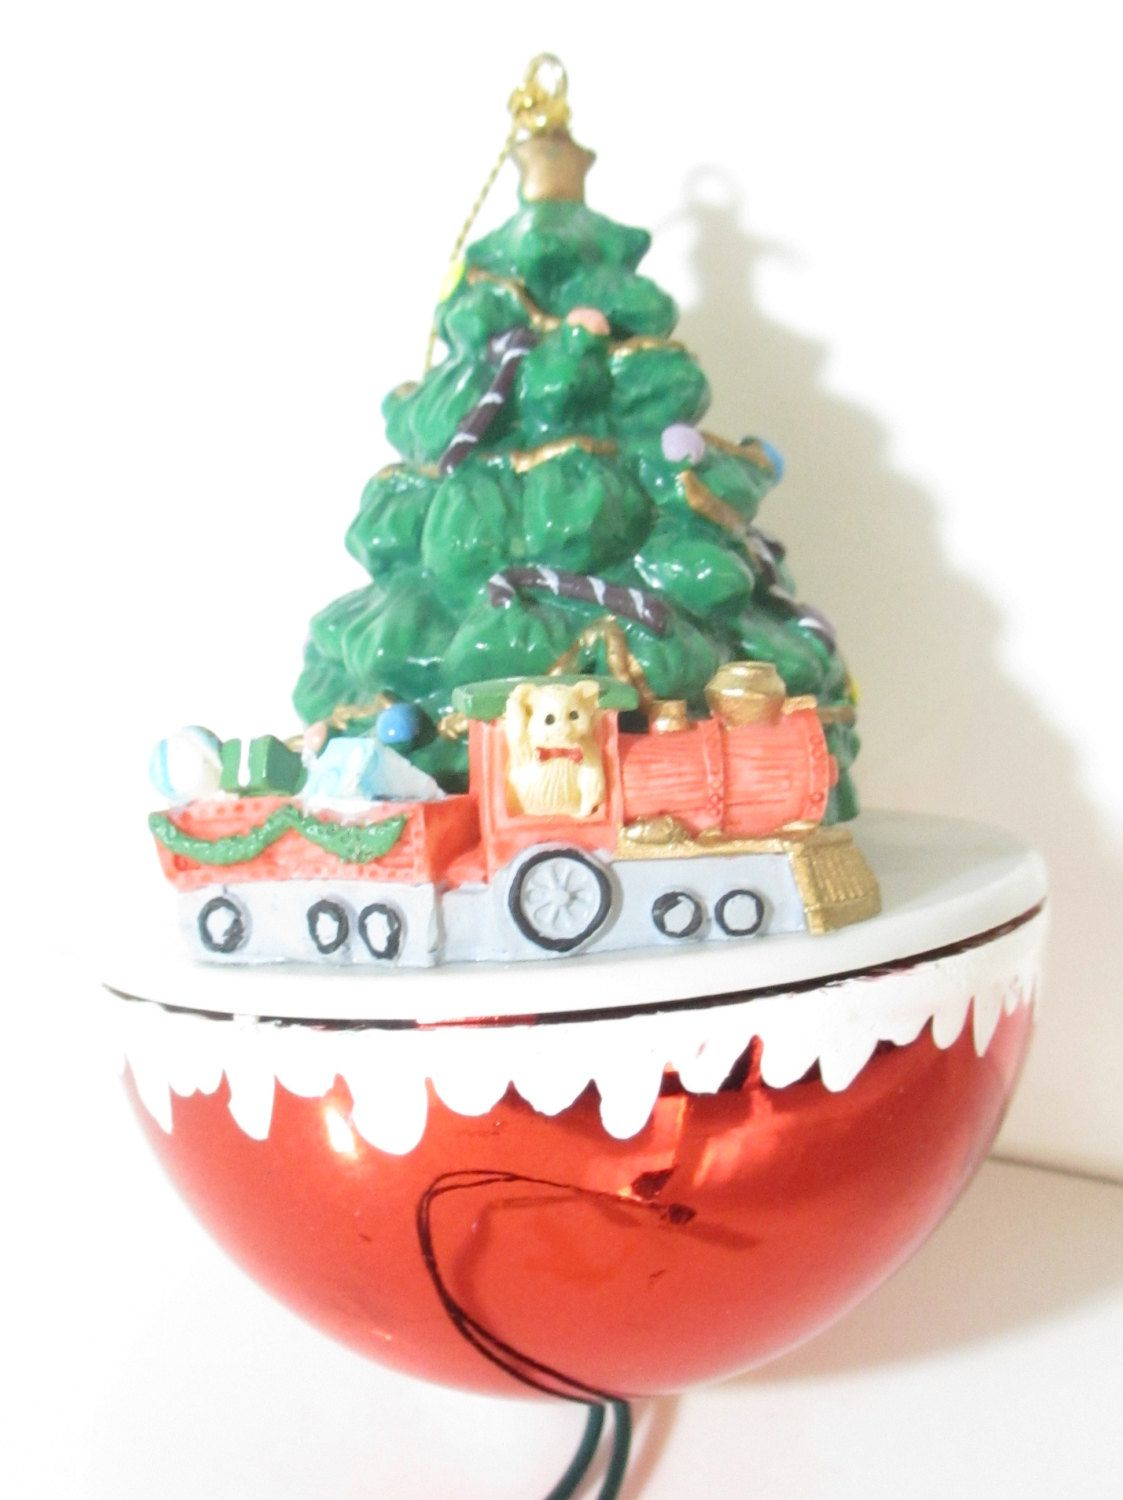 vintage chirstmas tree ornament with moving toy train christmas ornaments animated christmas decorations christmas tree 1980s by sandyleesattic on etsy - Animated Christmas Decorations